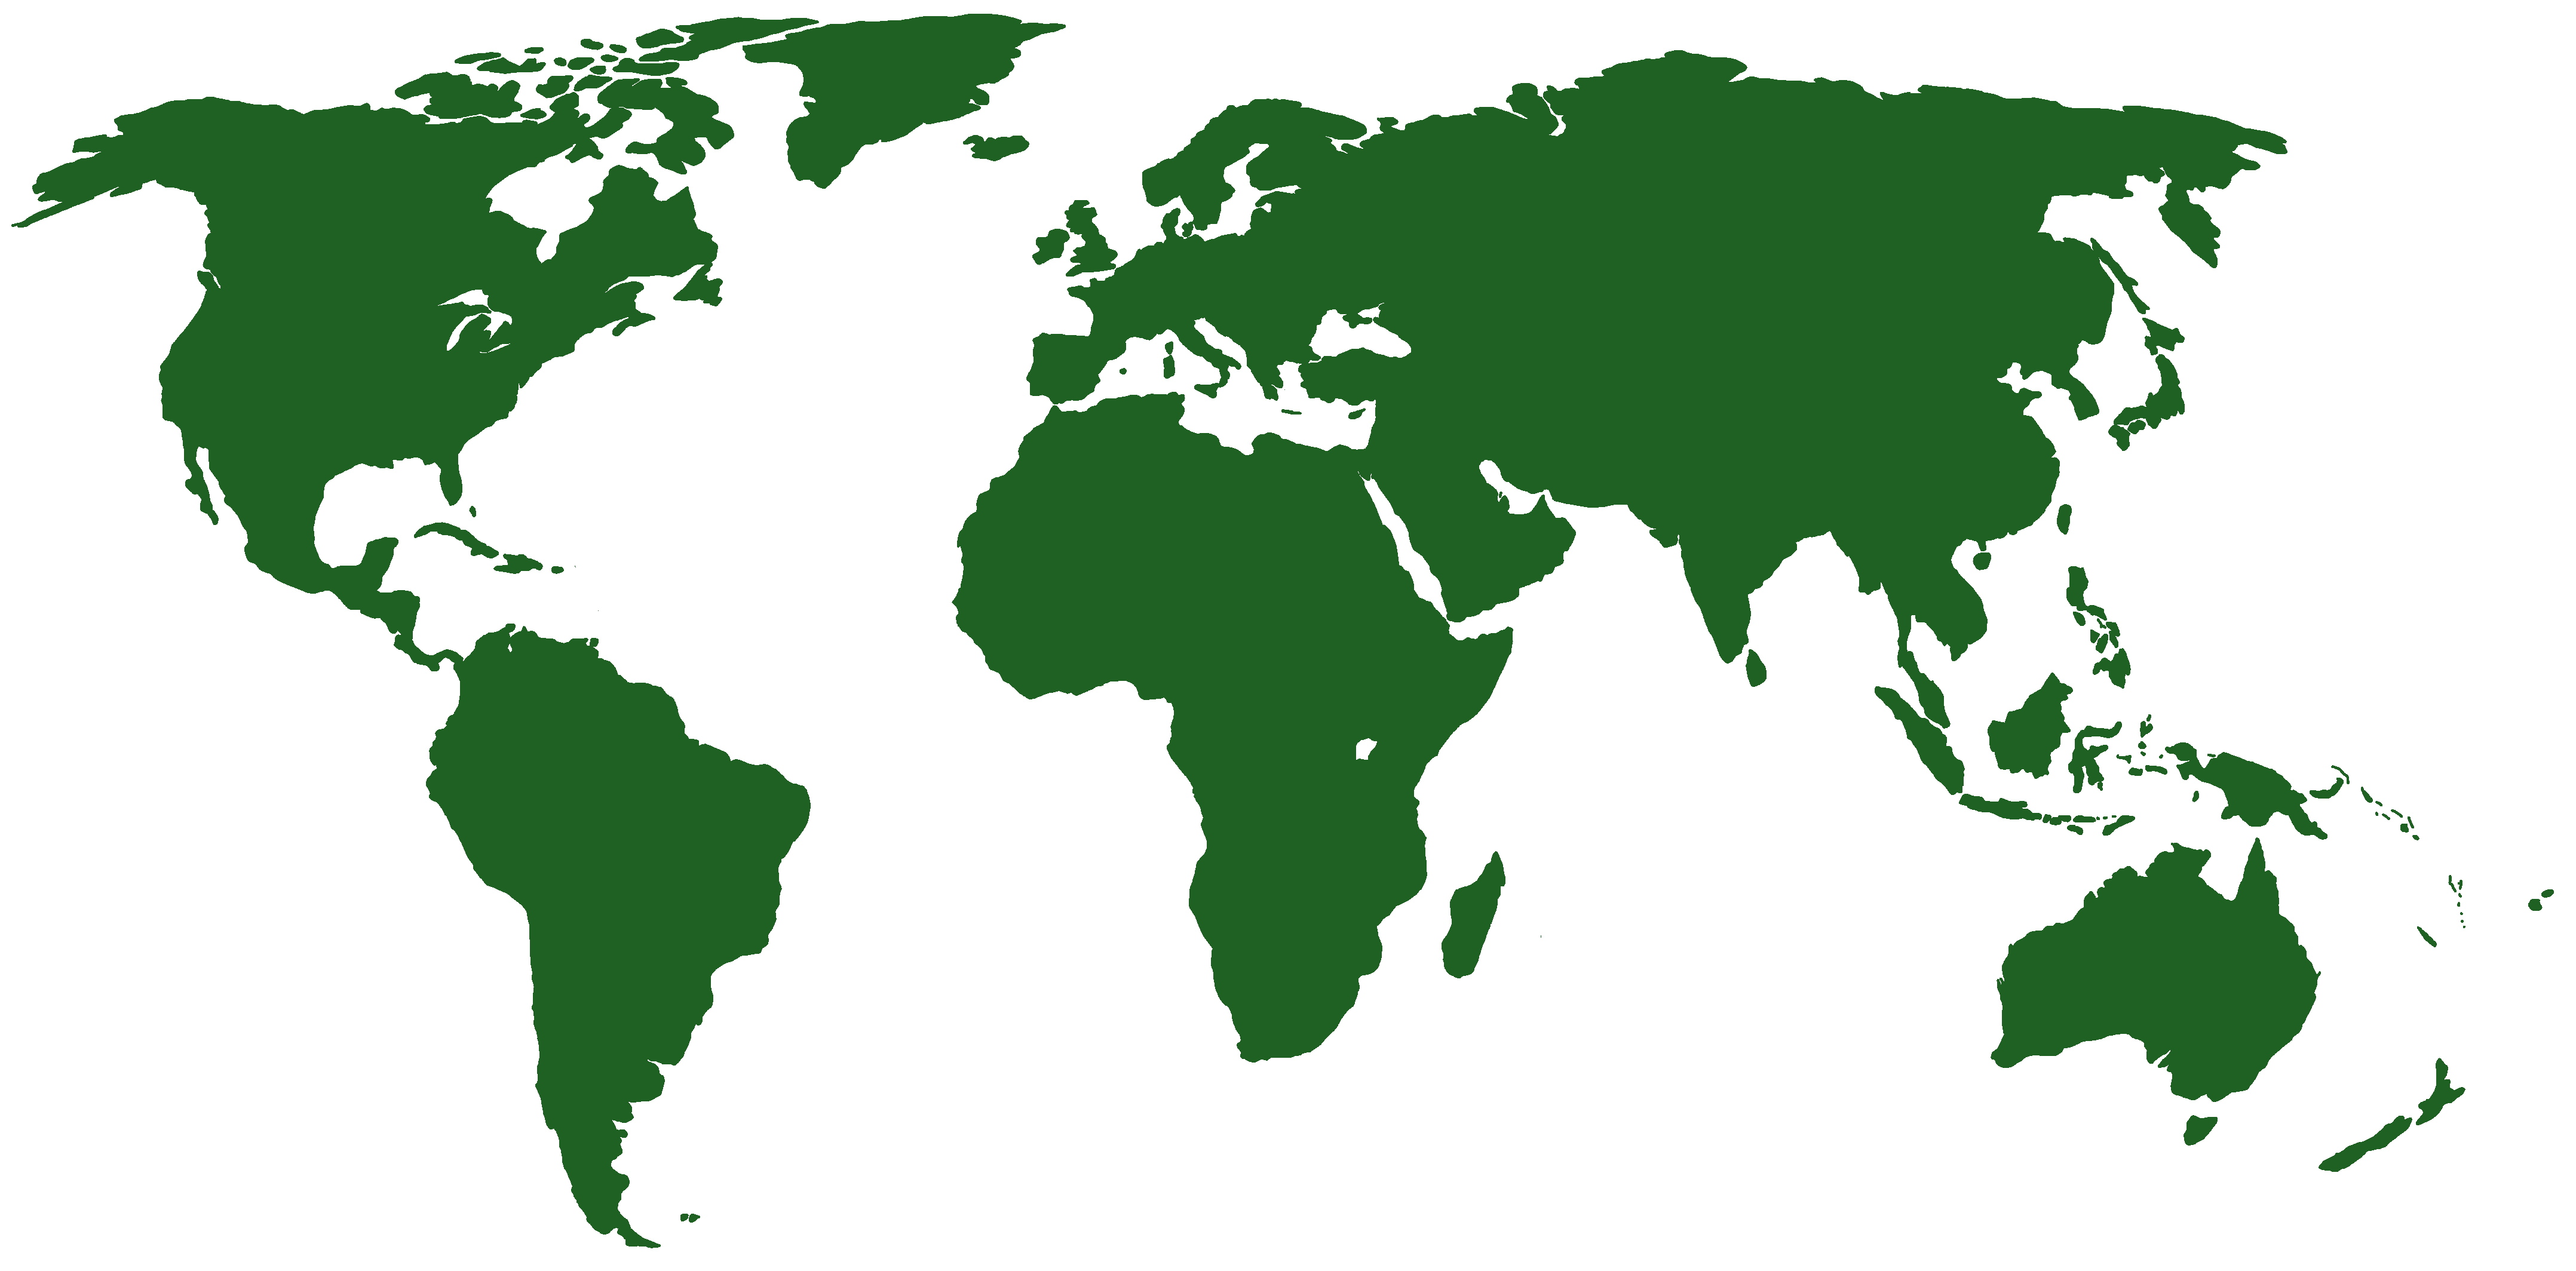 File:World map green.png - PNG World Map